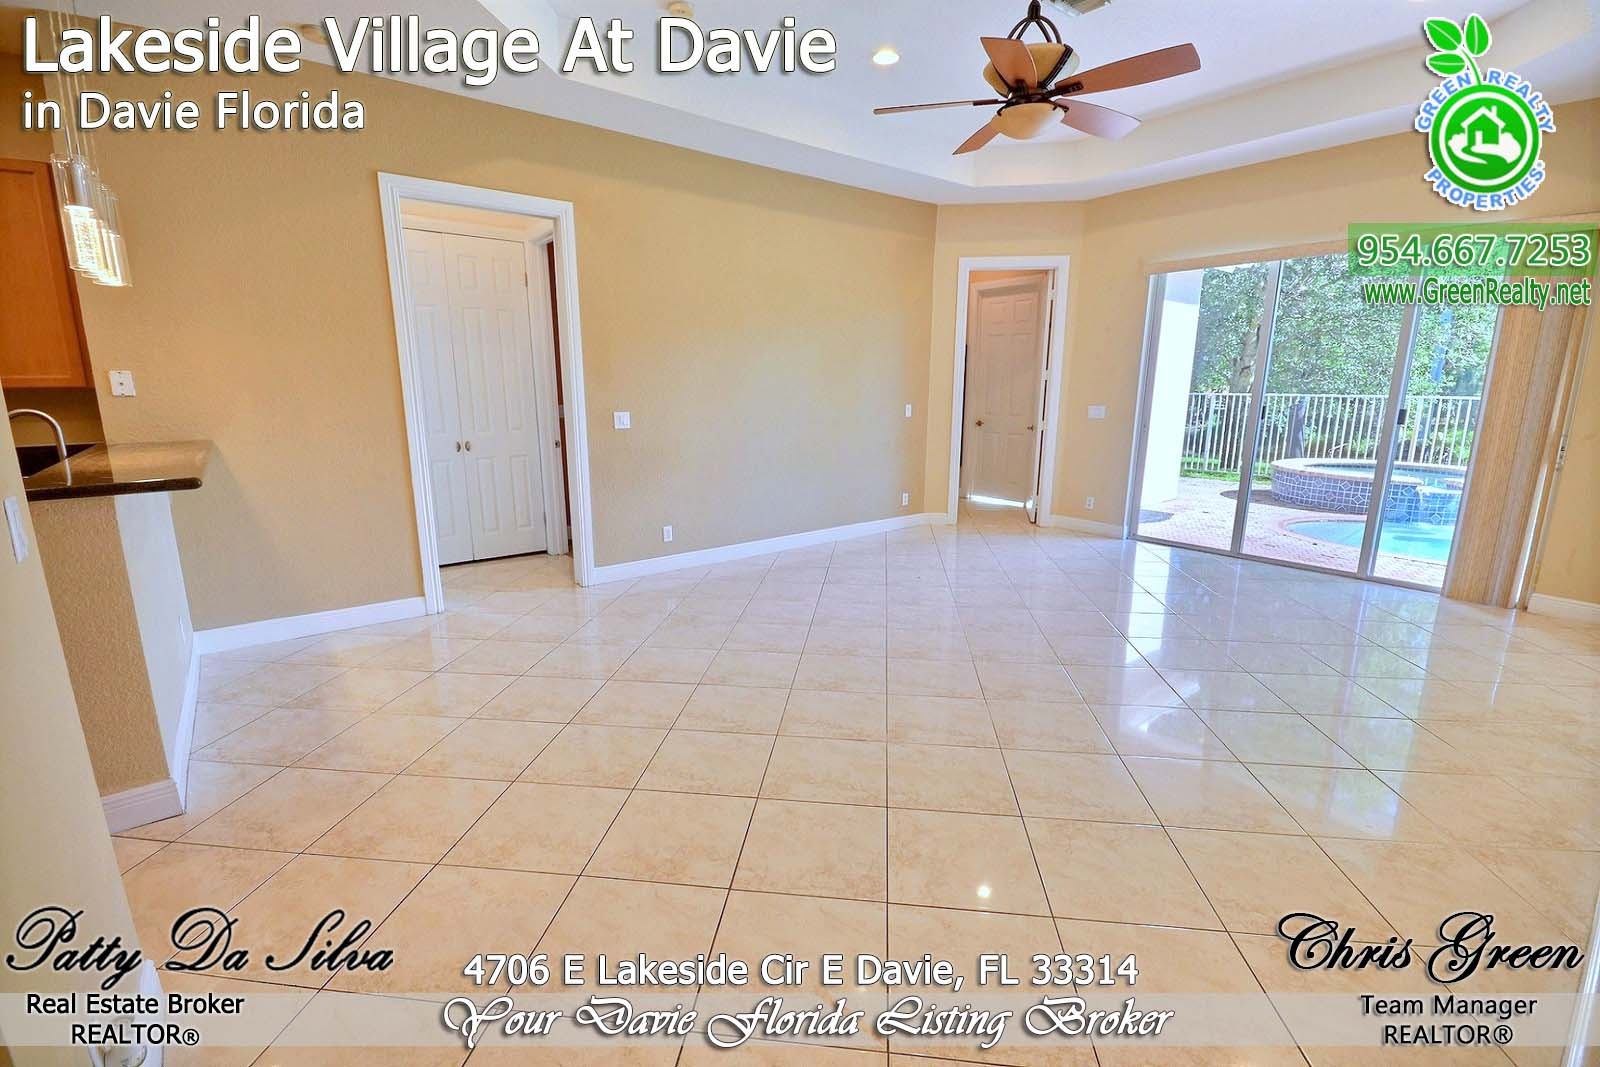 17 Davie Florida Real Estate Agents